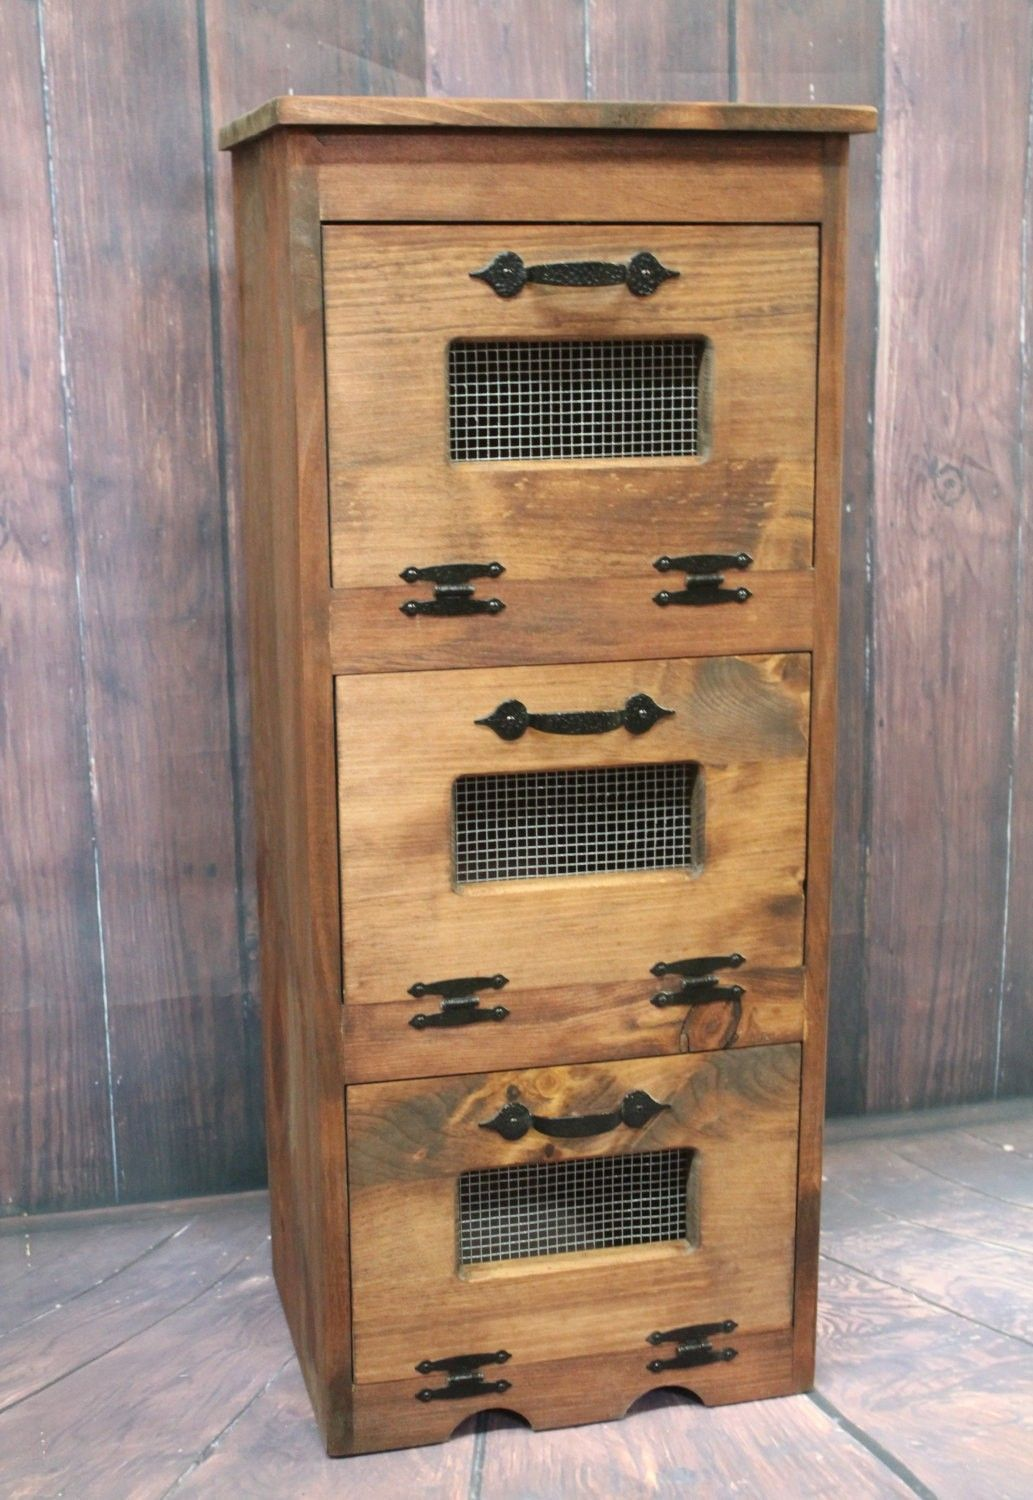 Where To Buy Wood Vegetable Bin Potato Storage Rustic Cupboard